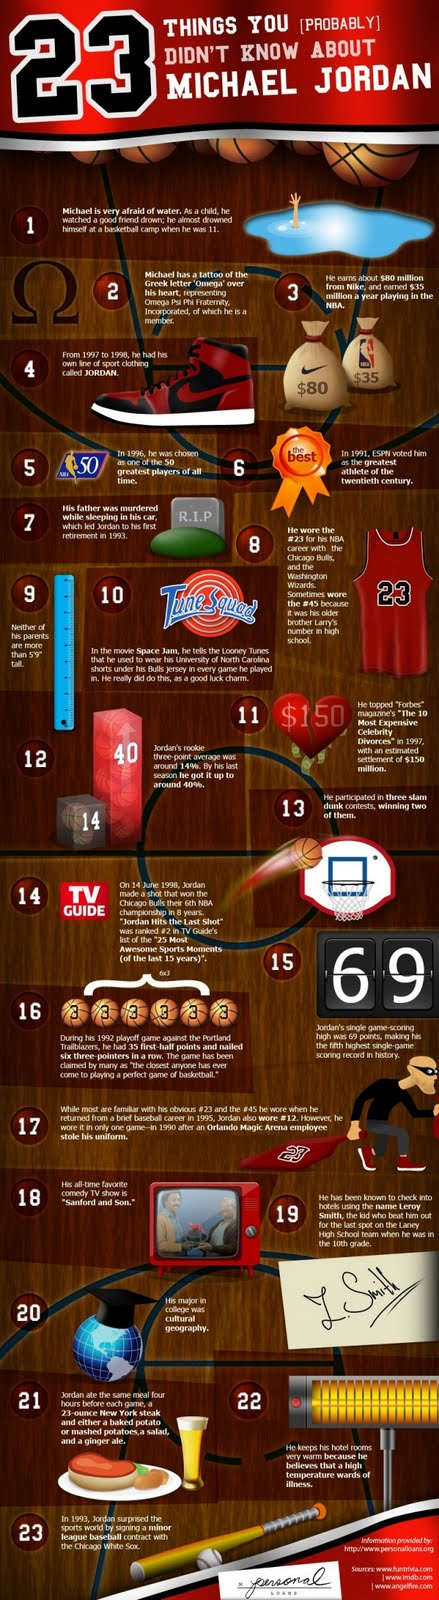 Cool Micheal Jordan Infographic